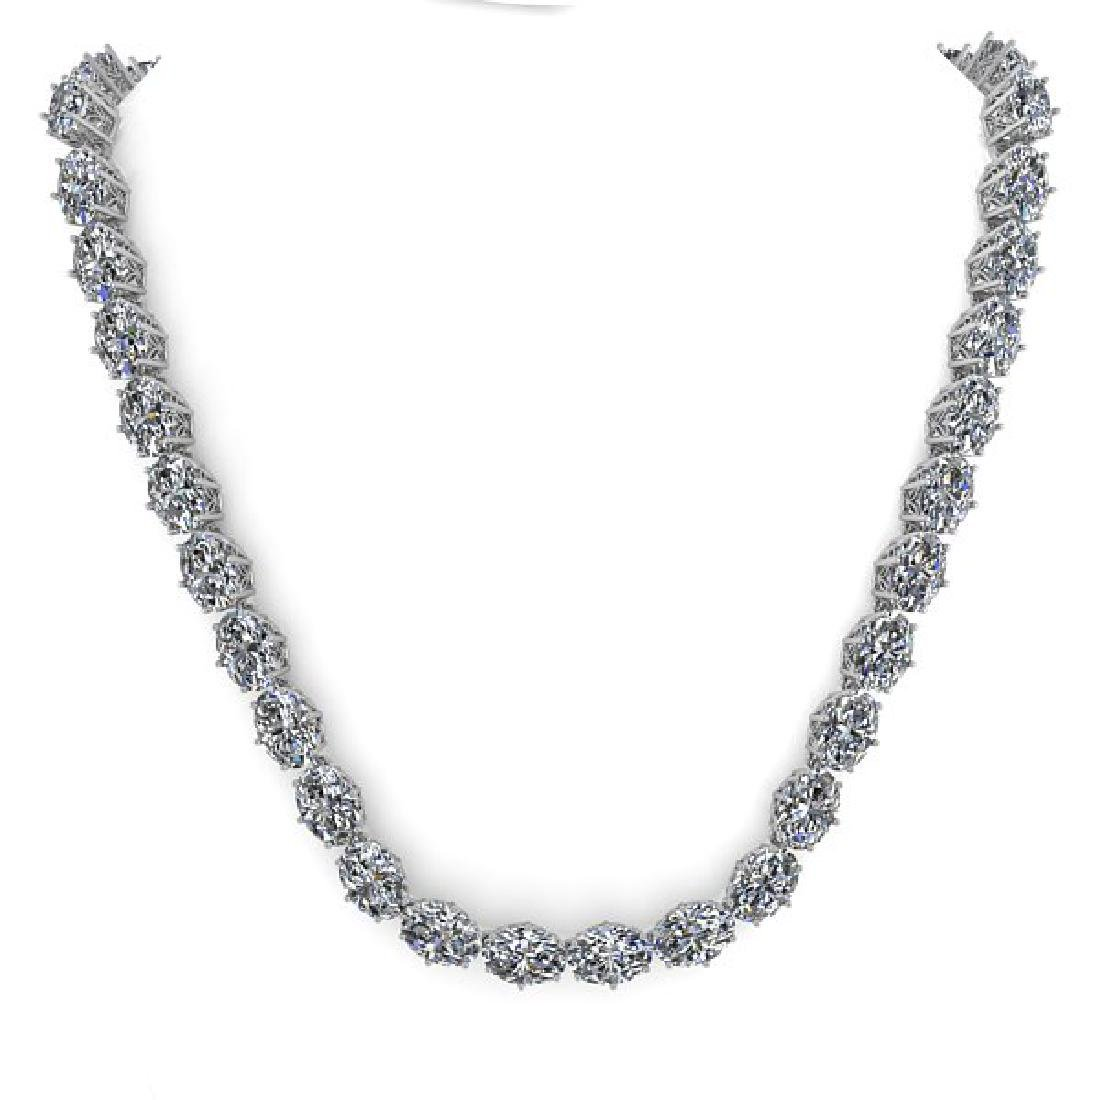 30 CTW Oval Cut SI Certified Diamond Necklace 14K White - 3